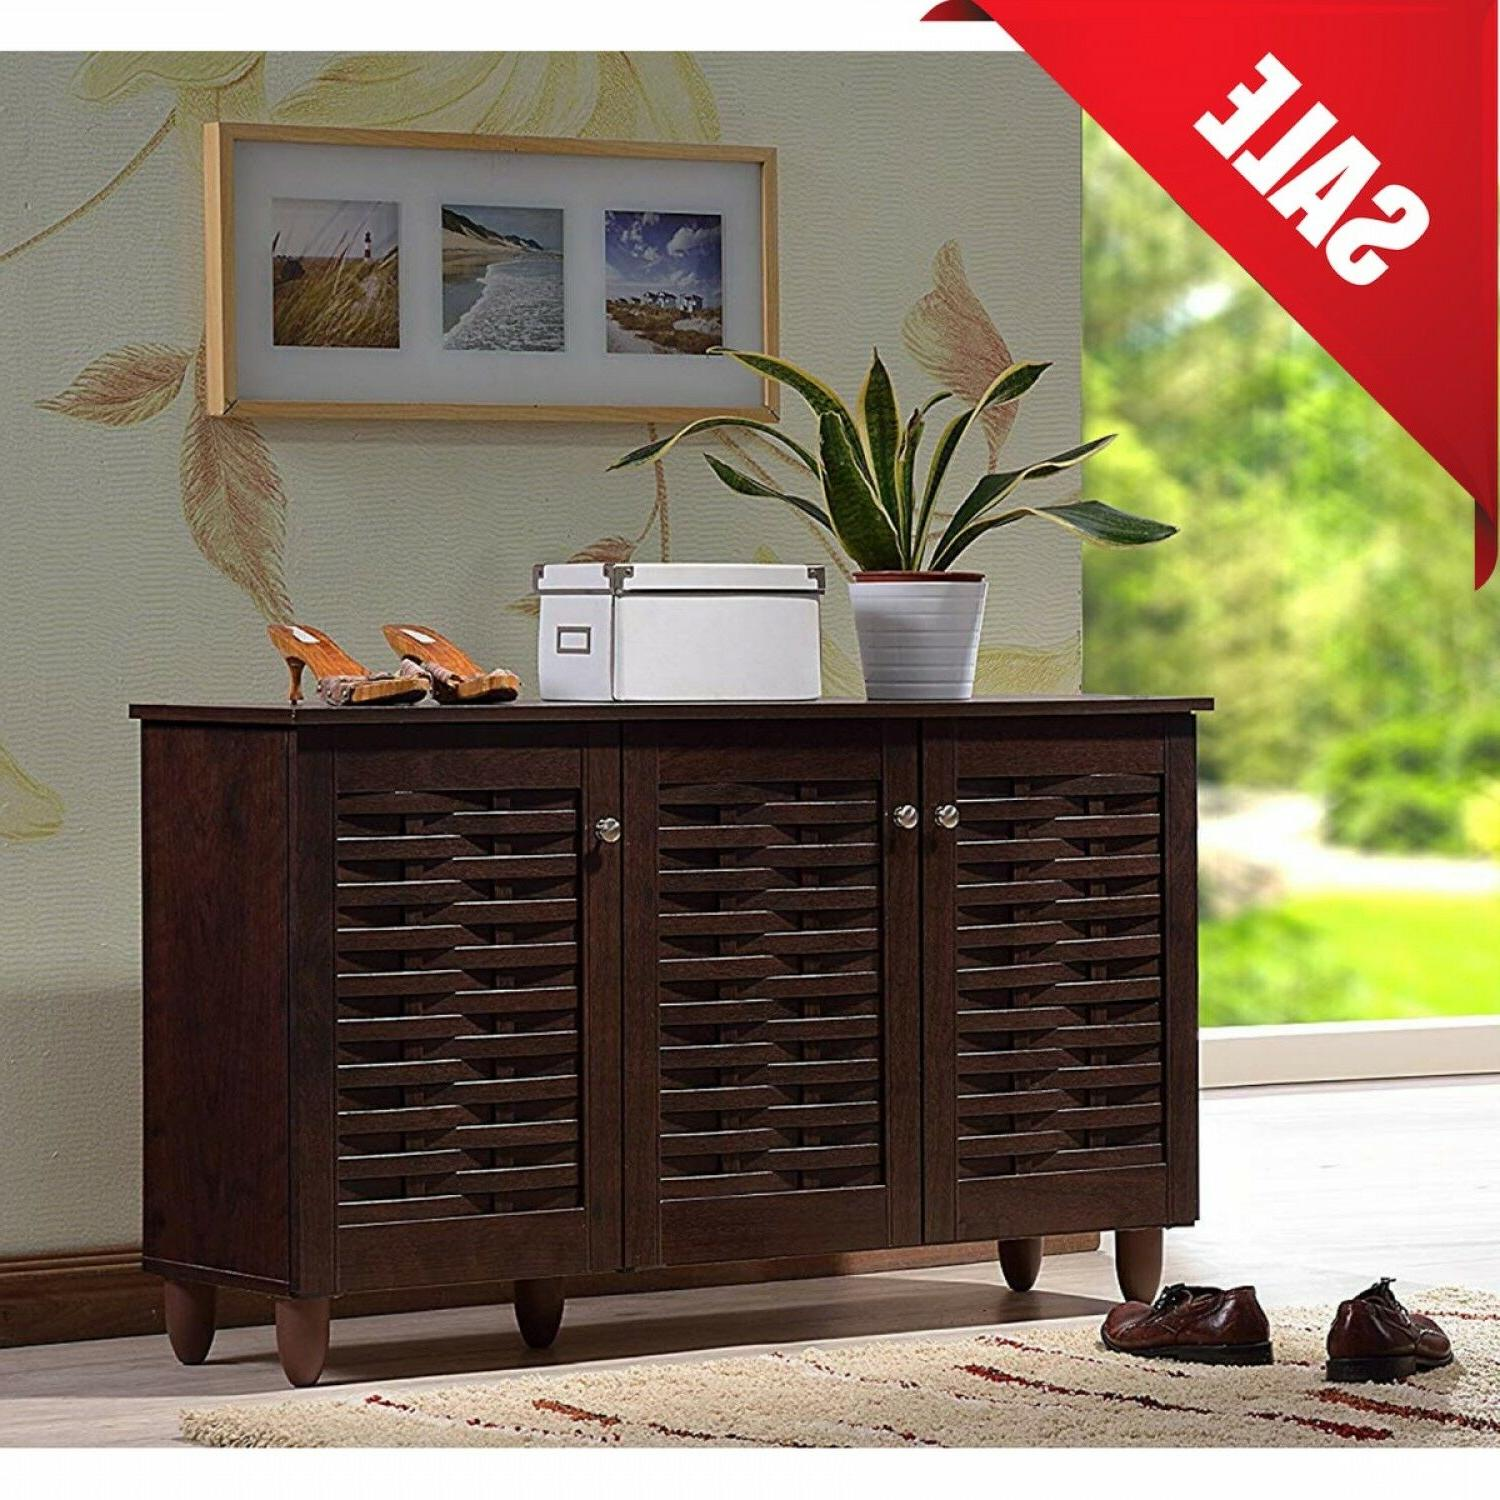 Entryway Cabinet Shoe Storage Living Room Stand